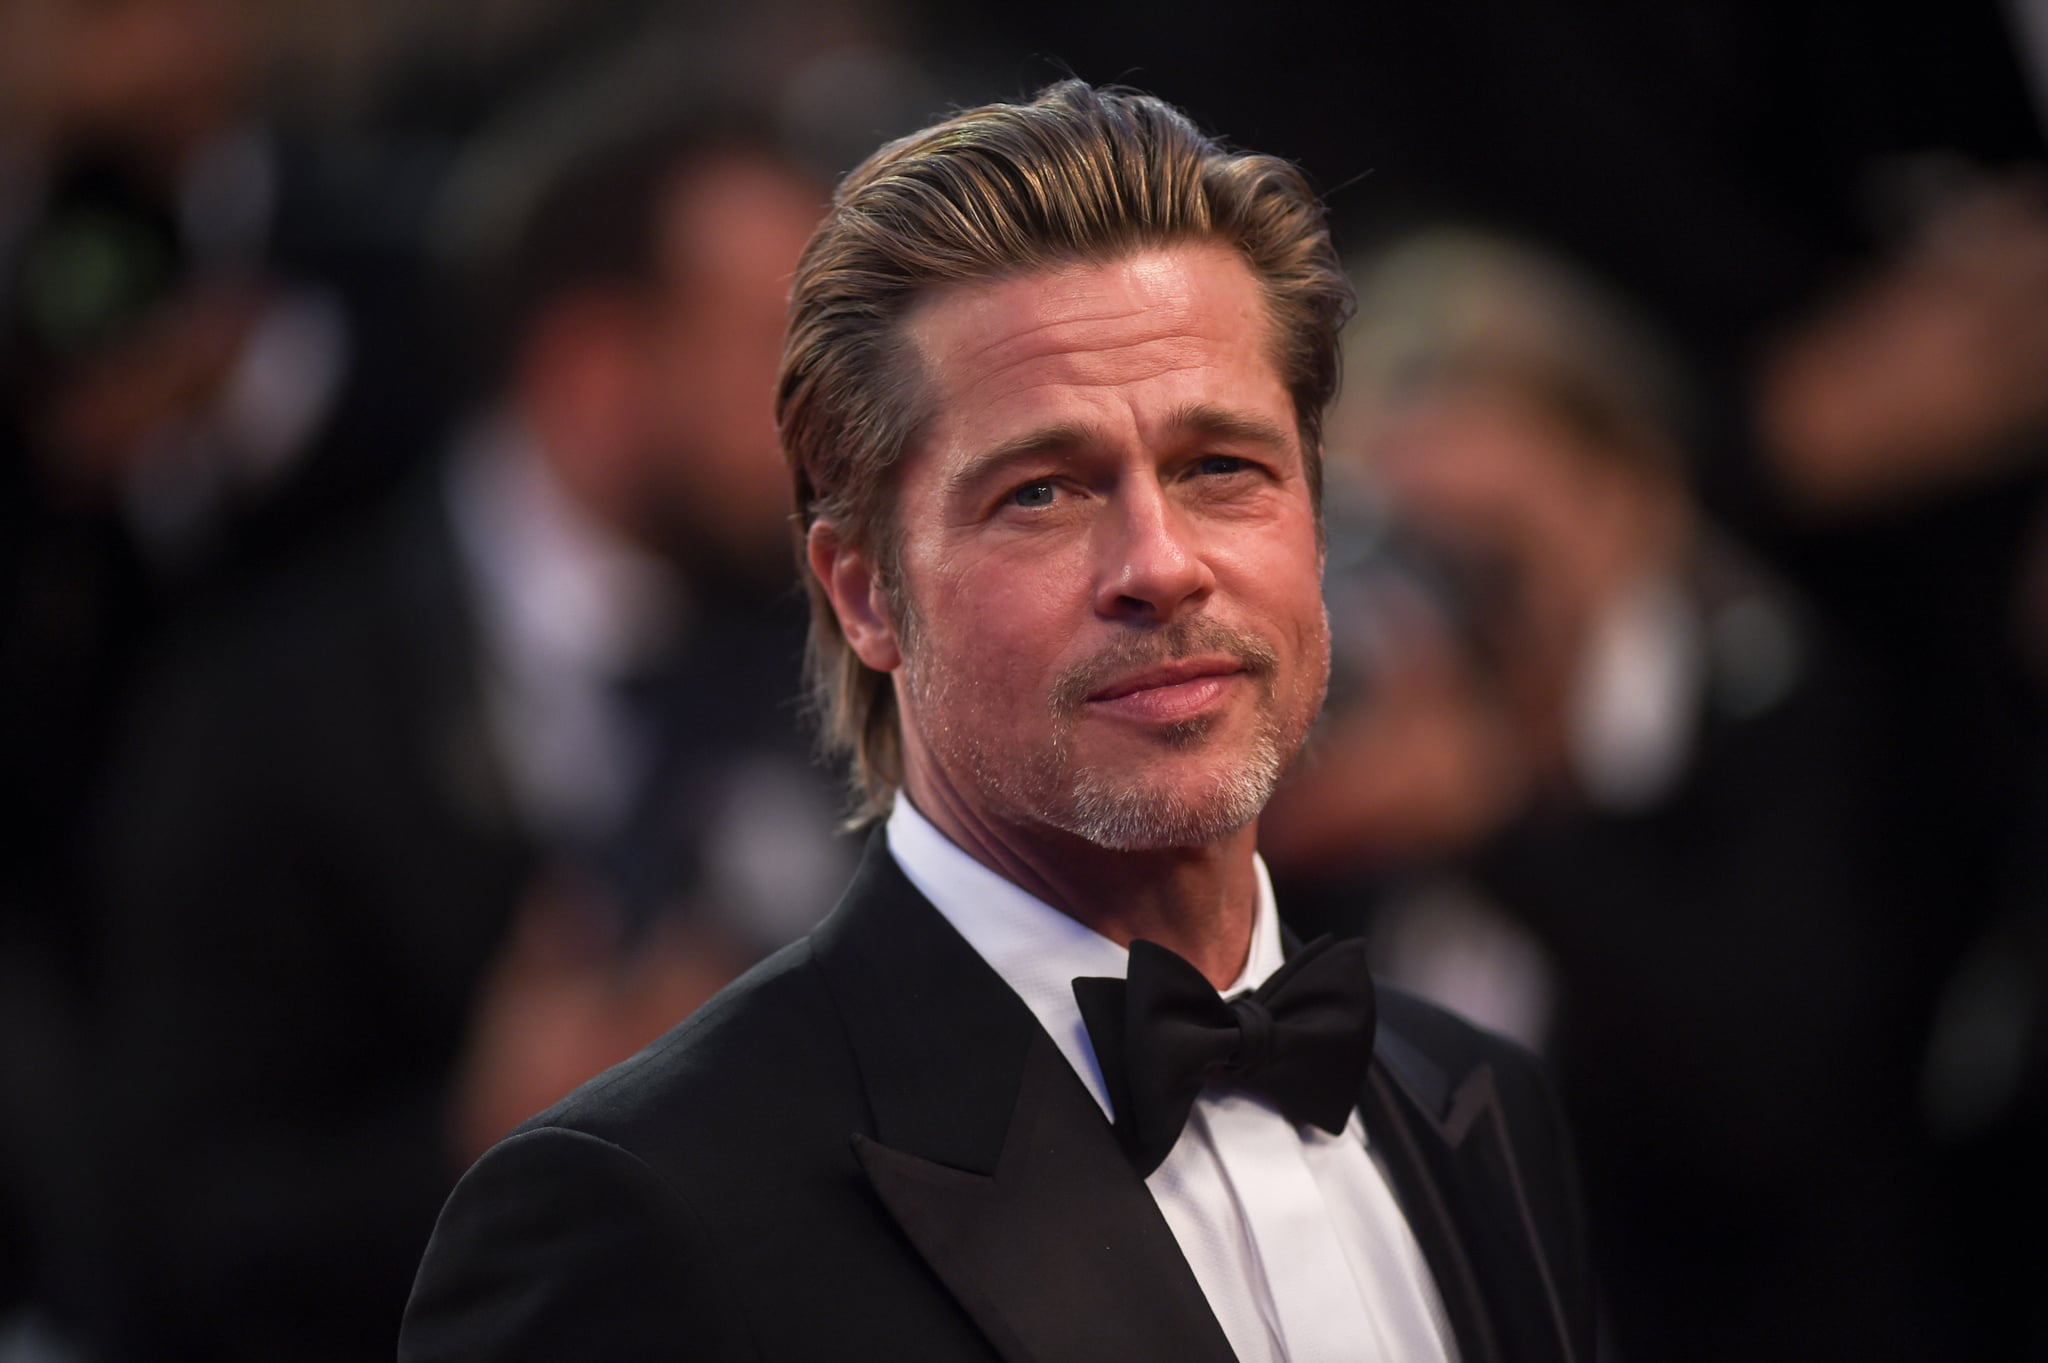 CANNES, FRANCE - MAY 21: Brad Pitt attends the screening of